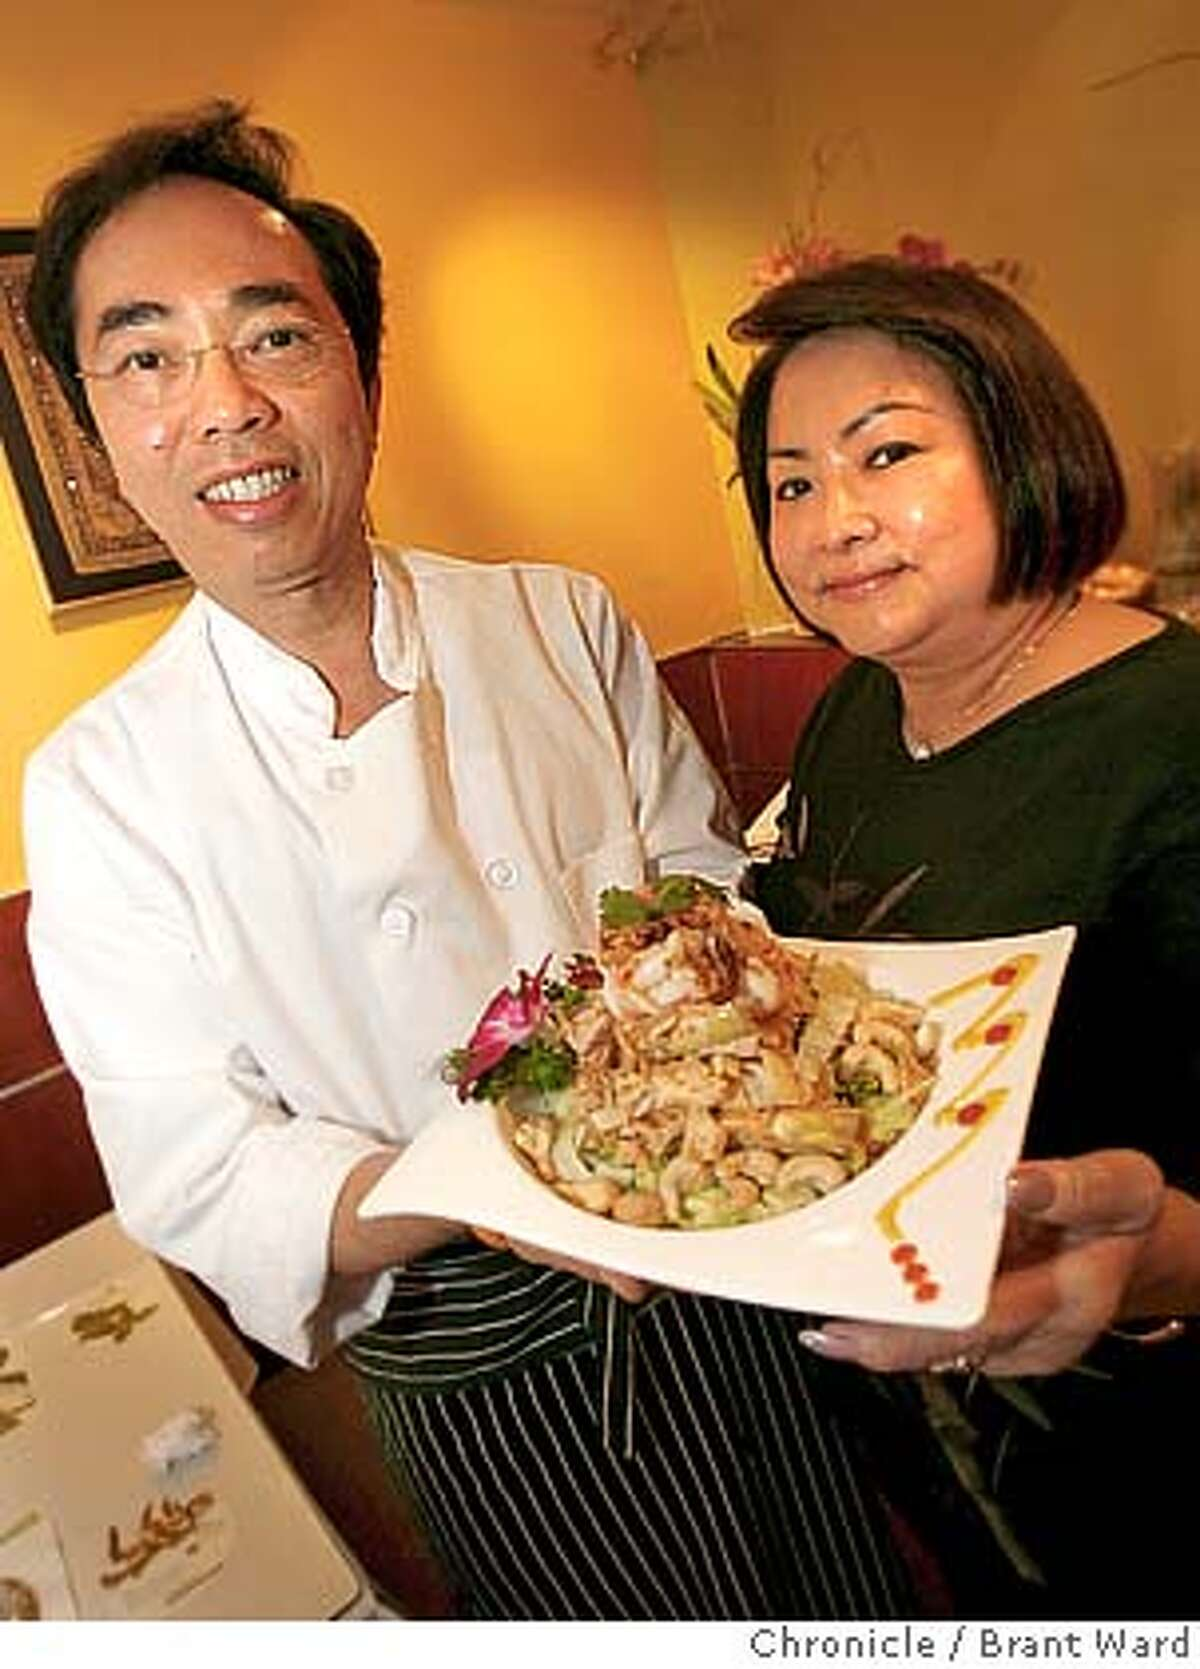 bargain23_marnee123.JPG Chai, left and May Siriyarn of Marnee Thai with their famous artichoke and banana blossom salad. Marnee Thai at 1243 9th Avenue offers quality food at budget prices. {Brant Ward/San Francisco Chronicle}11/8/06